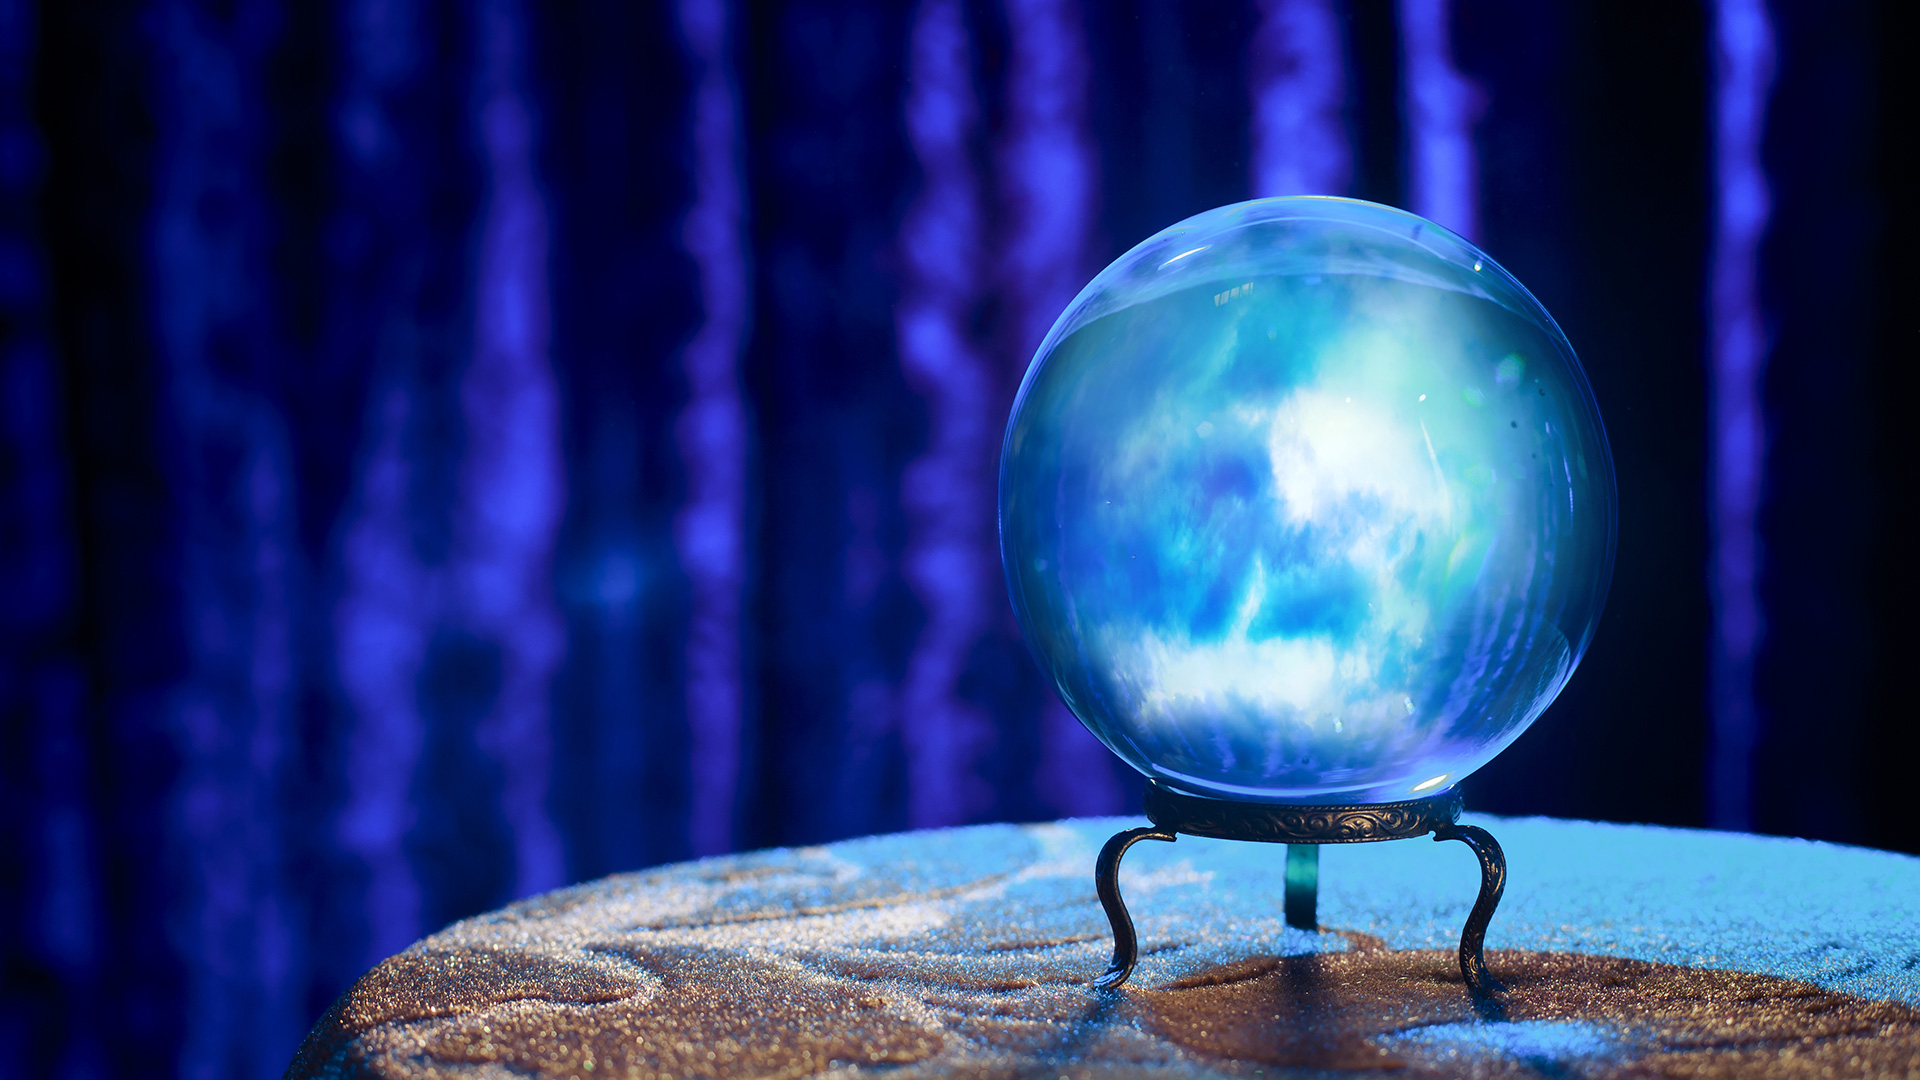 crystal ball representing publishers and agencies receiving future data